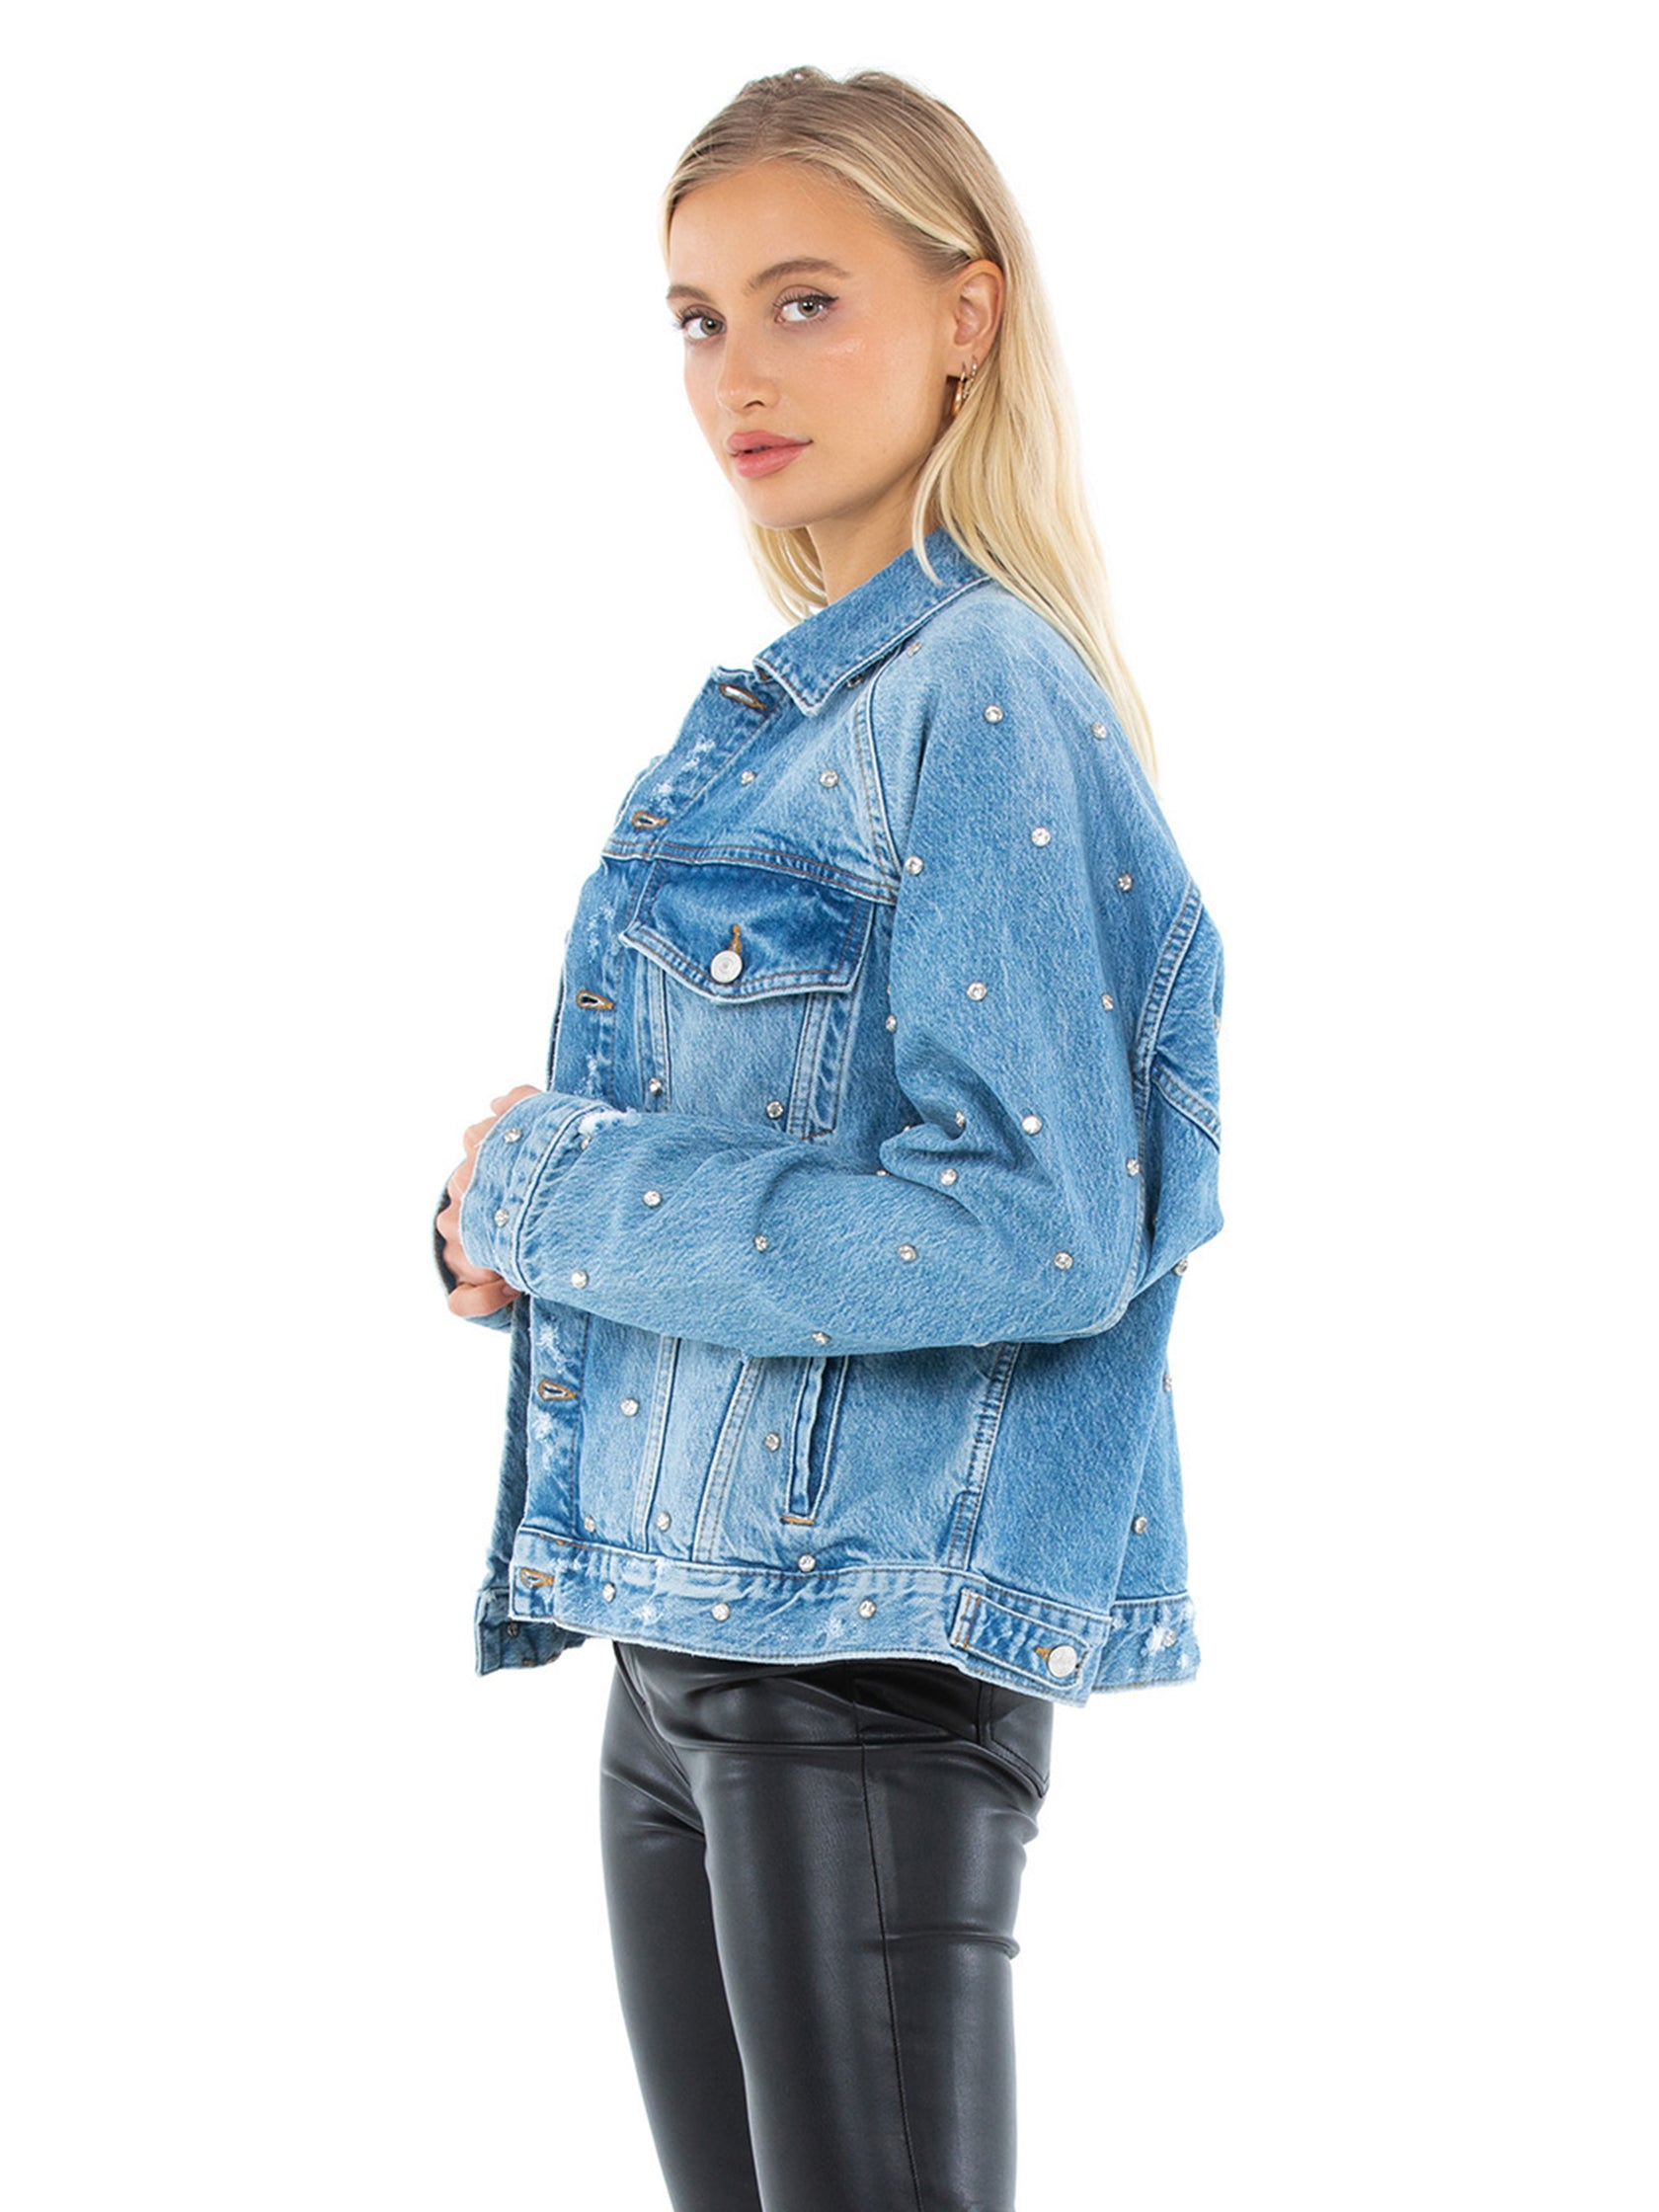 Women wearing a jacket rental from Free People called Night After Night Denim Jacket